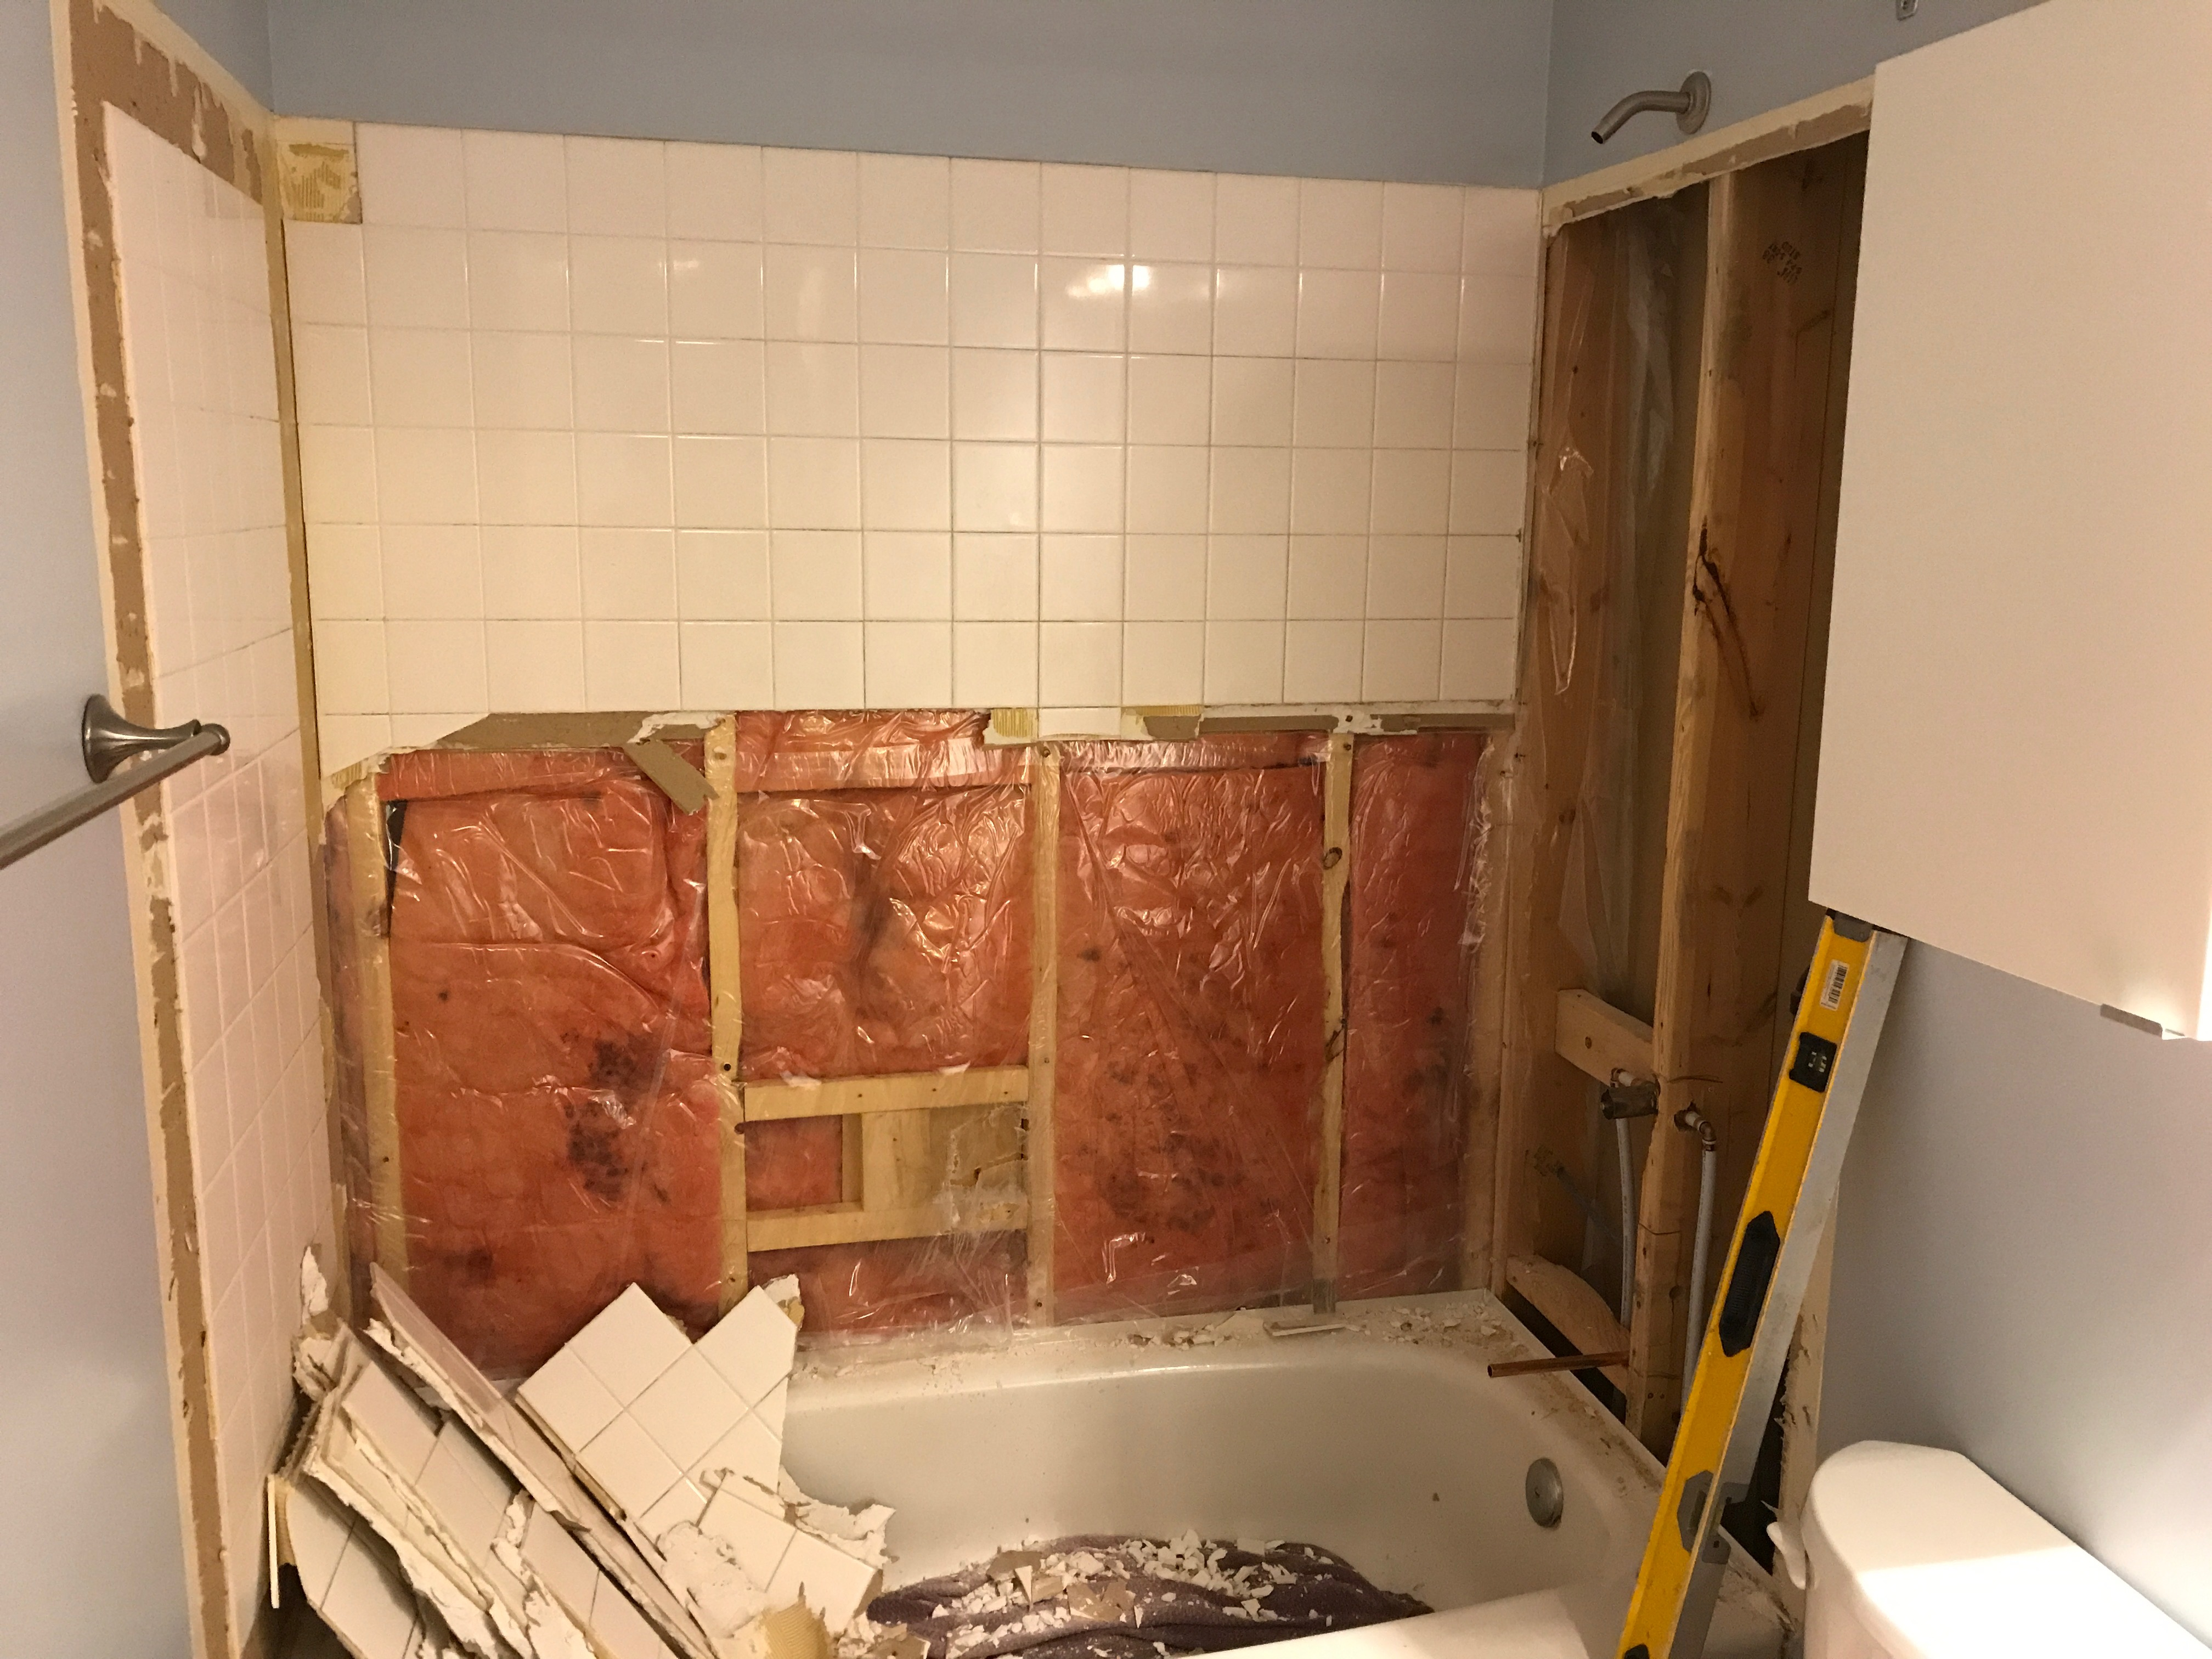 Bathroom Renovation 1 - Dugard Plumbing, Heating & Cooling